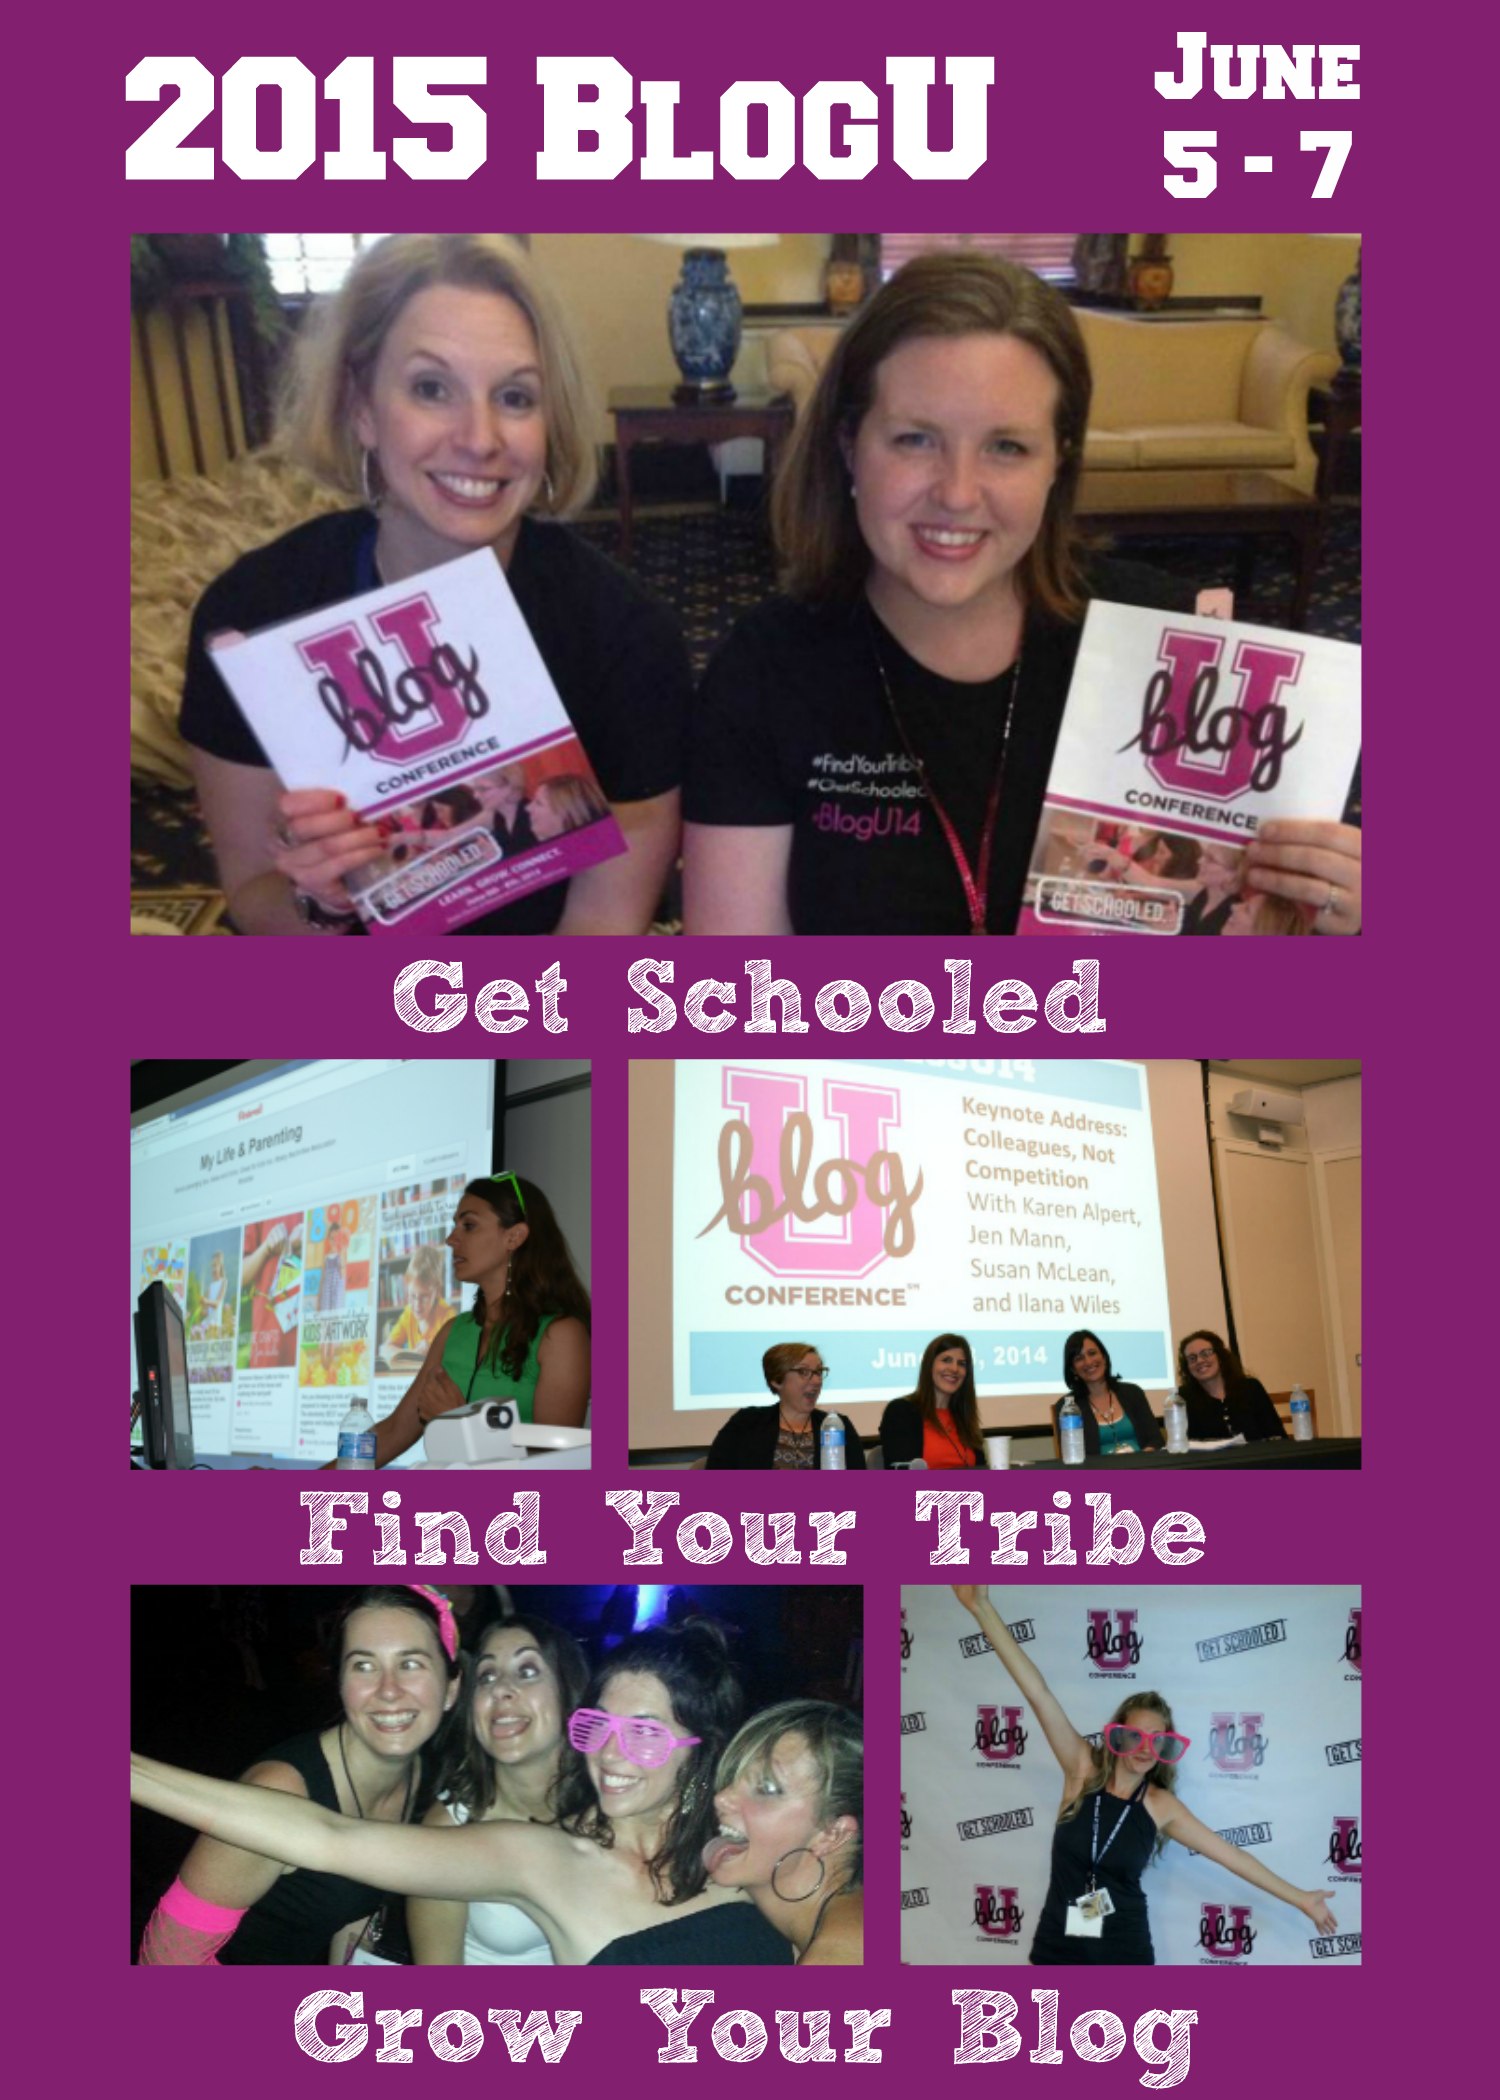 The 2015 BlogU Conference is the best value in the business! With one economical ticket you get the tools to elevate your blogging and writing career aspirations to reality. Get schooled. Find your tribe. Grow your blog. Register today and prepare to be inspired! June 5 -7, Baltimore, MD. | BlogU15